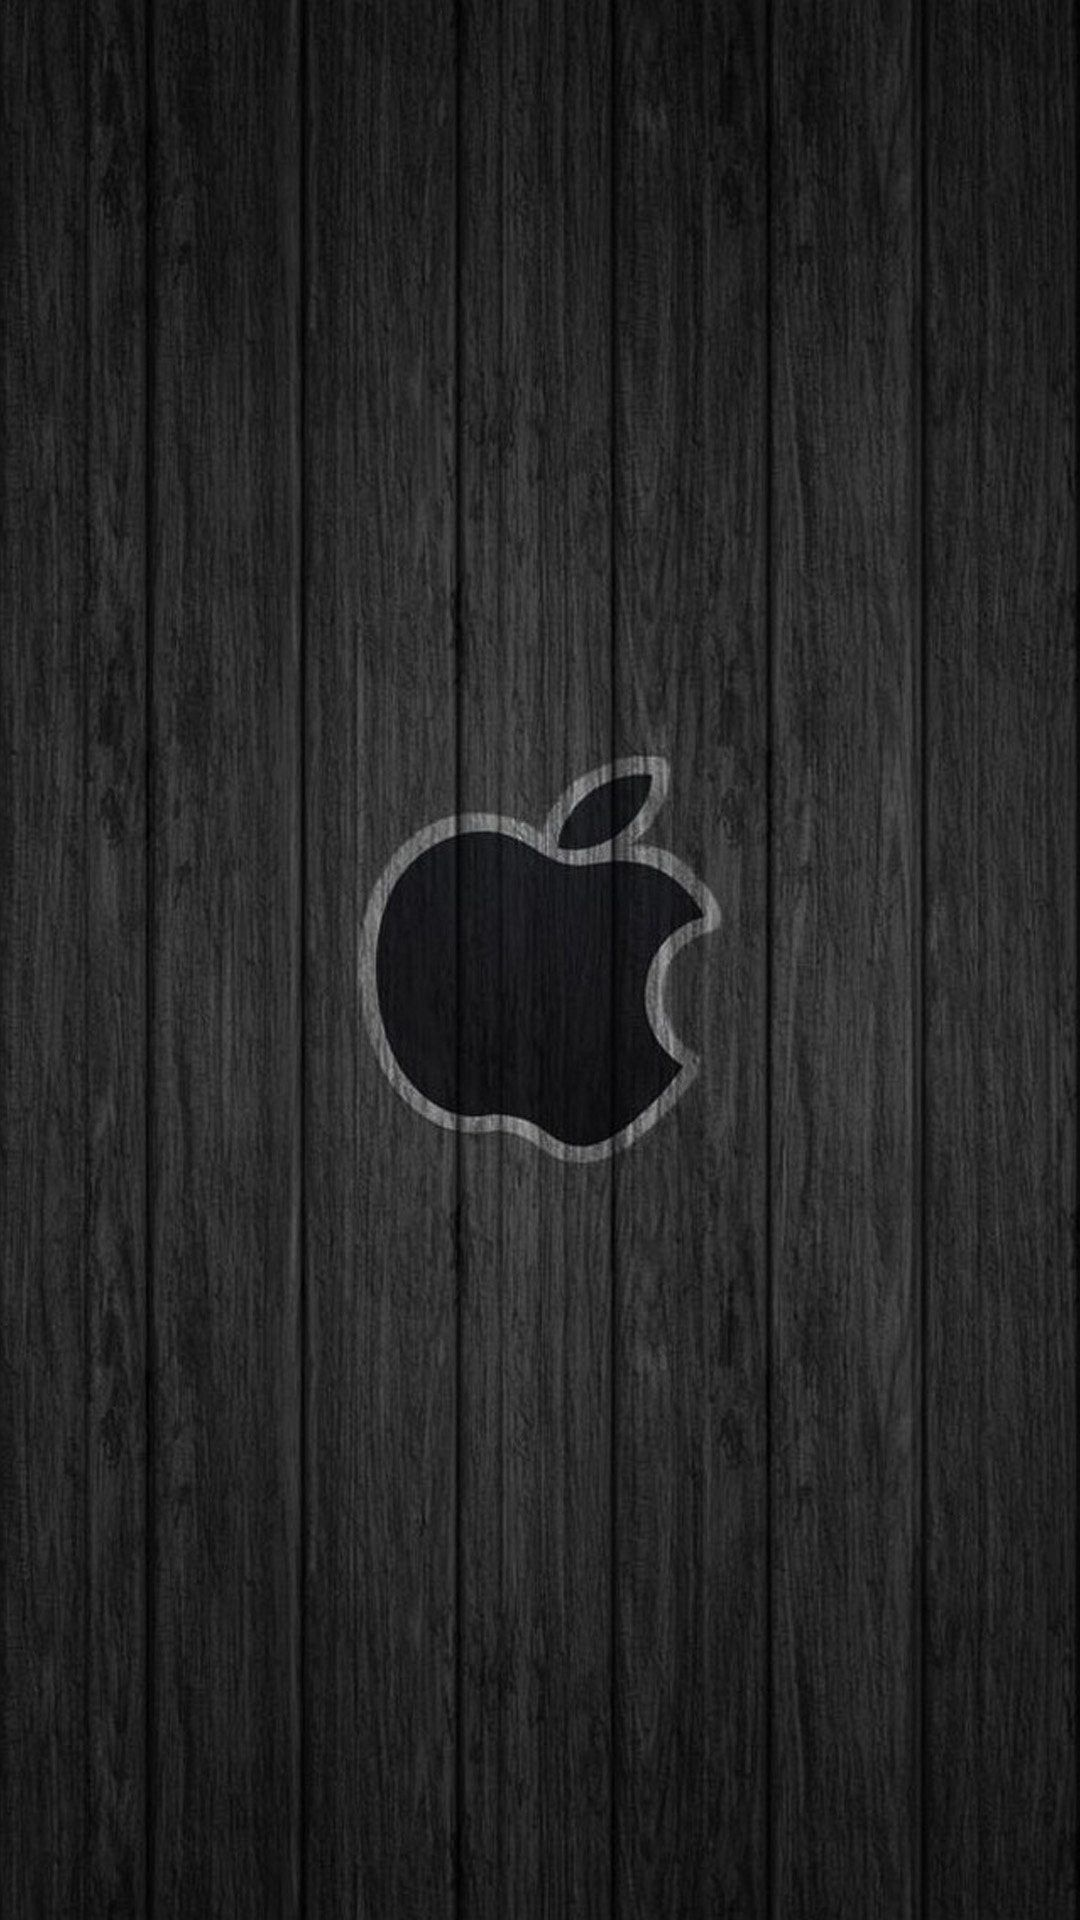 apple wallpaper apple logo best hd wallpapers for iphone | hd